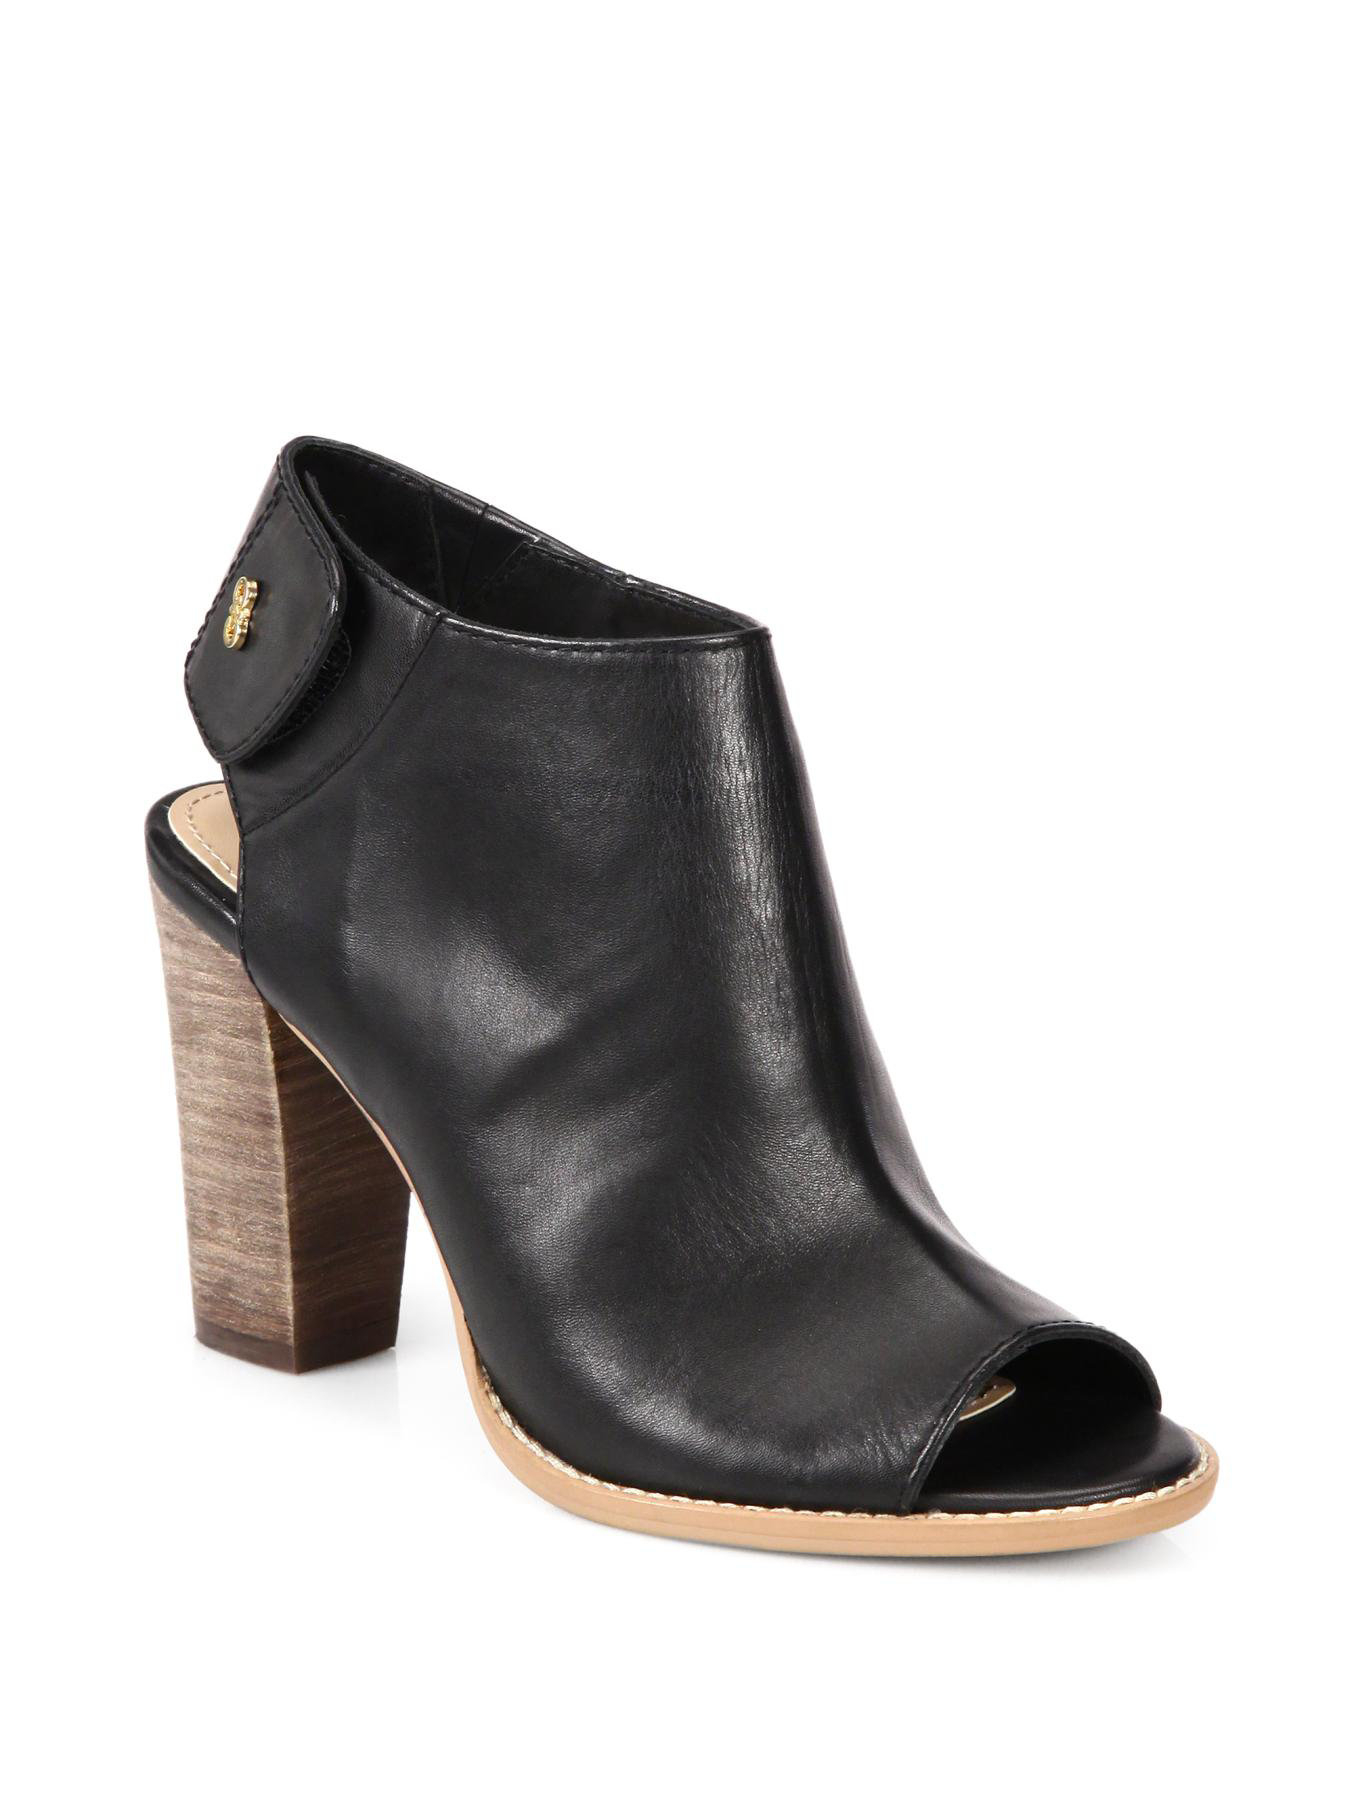 Are you looking for open toe ankle boots? Tbdress is a best place to buy Boots. Here offers a fantastic collection of open toe ankle boots, variety of styles, colors to suit you. All of items have the lowest price for you. So visit Tbdress now, you will have a super surprising!